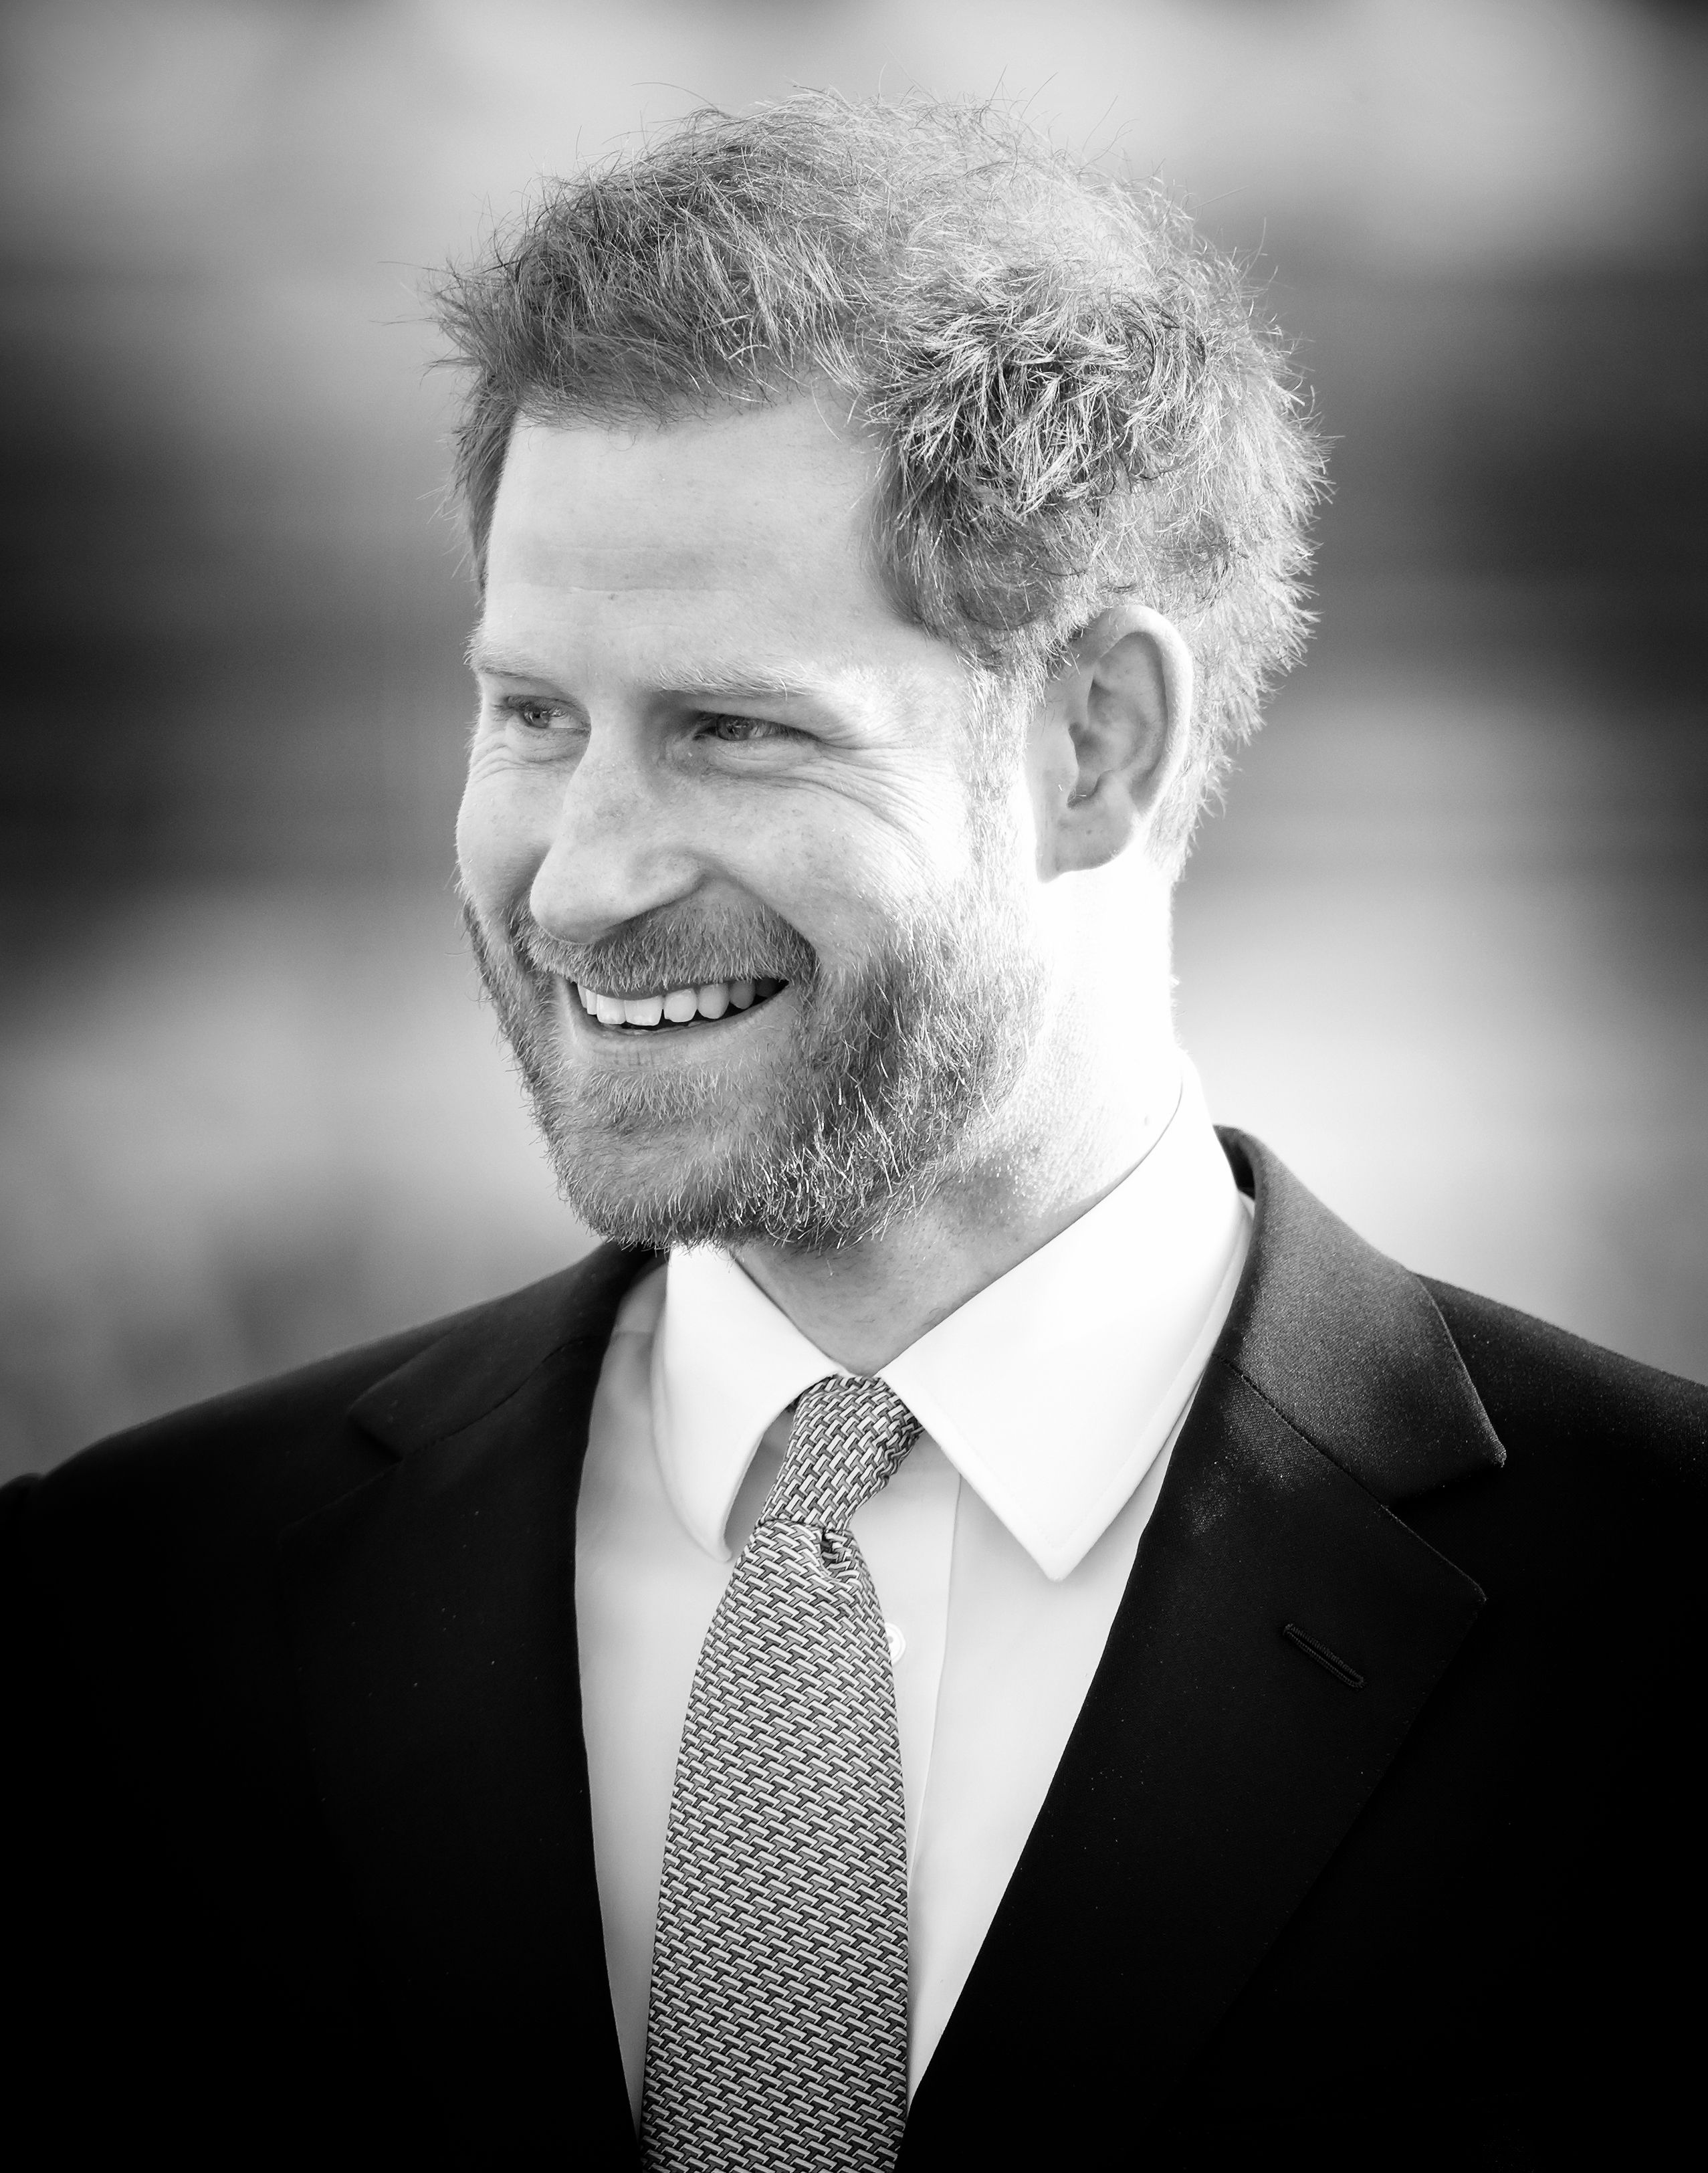 Prince Harry Doesn't Have Any Regrets About Leaving the Royal Family